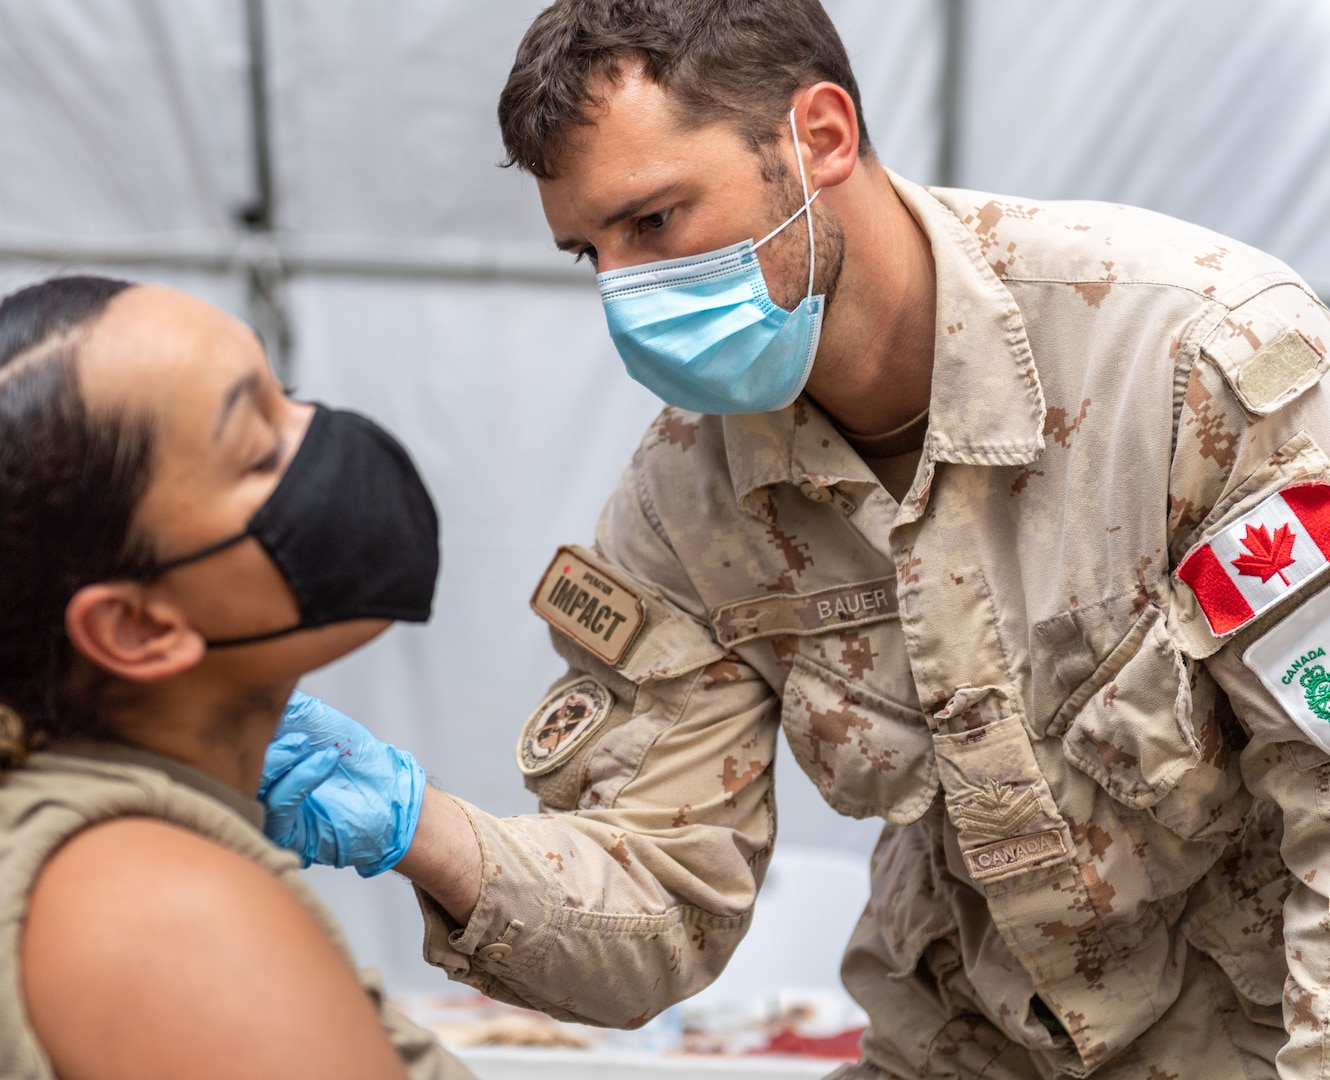 Person applies fake injuries on a simulated casualty.